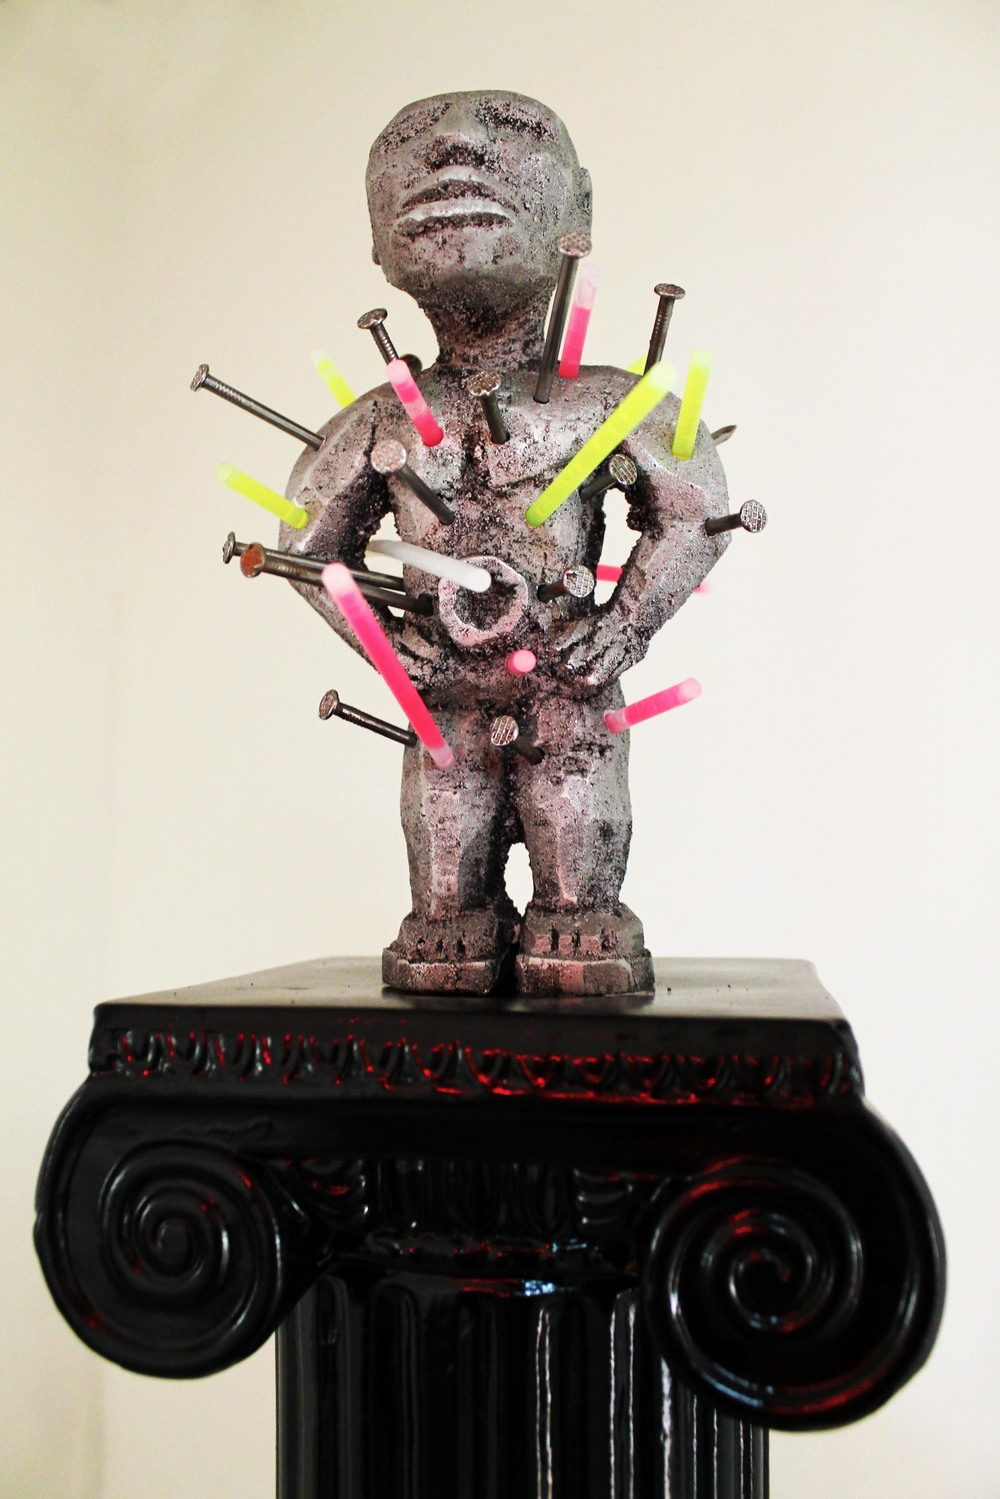 Matthew Couper   Contemporary Devotional Nsiki  2014  Cast aluminium, ceramic plinth, steel nails, glow sticks  62 x 18 x 18cm   AUD $6,600